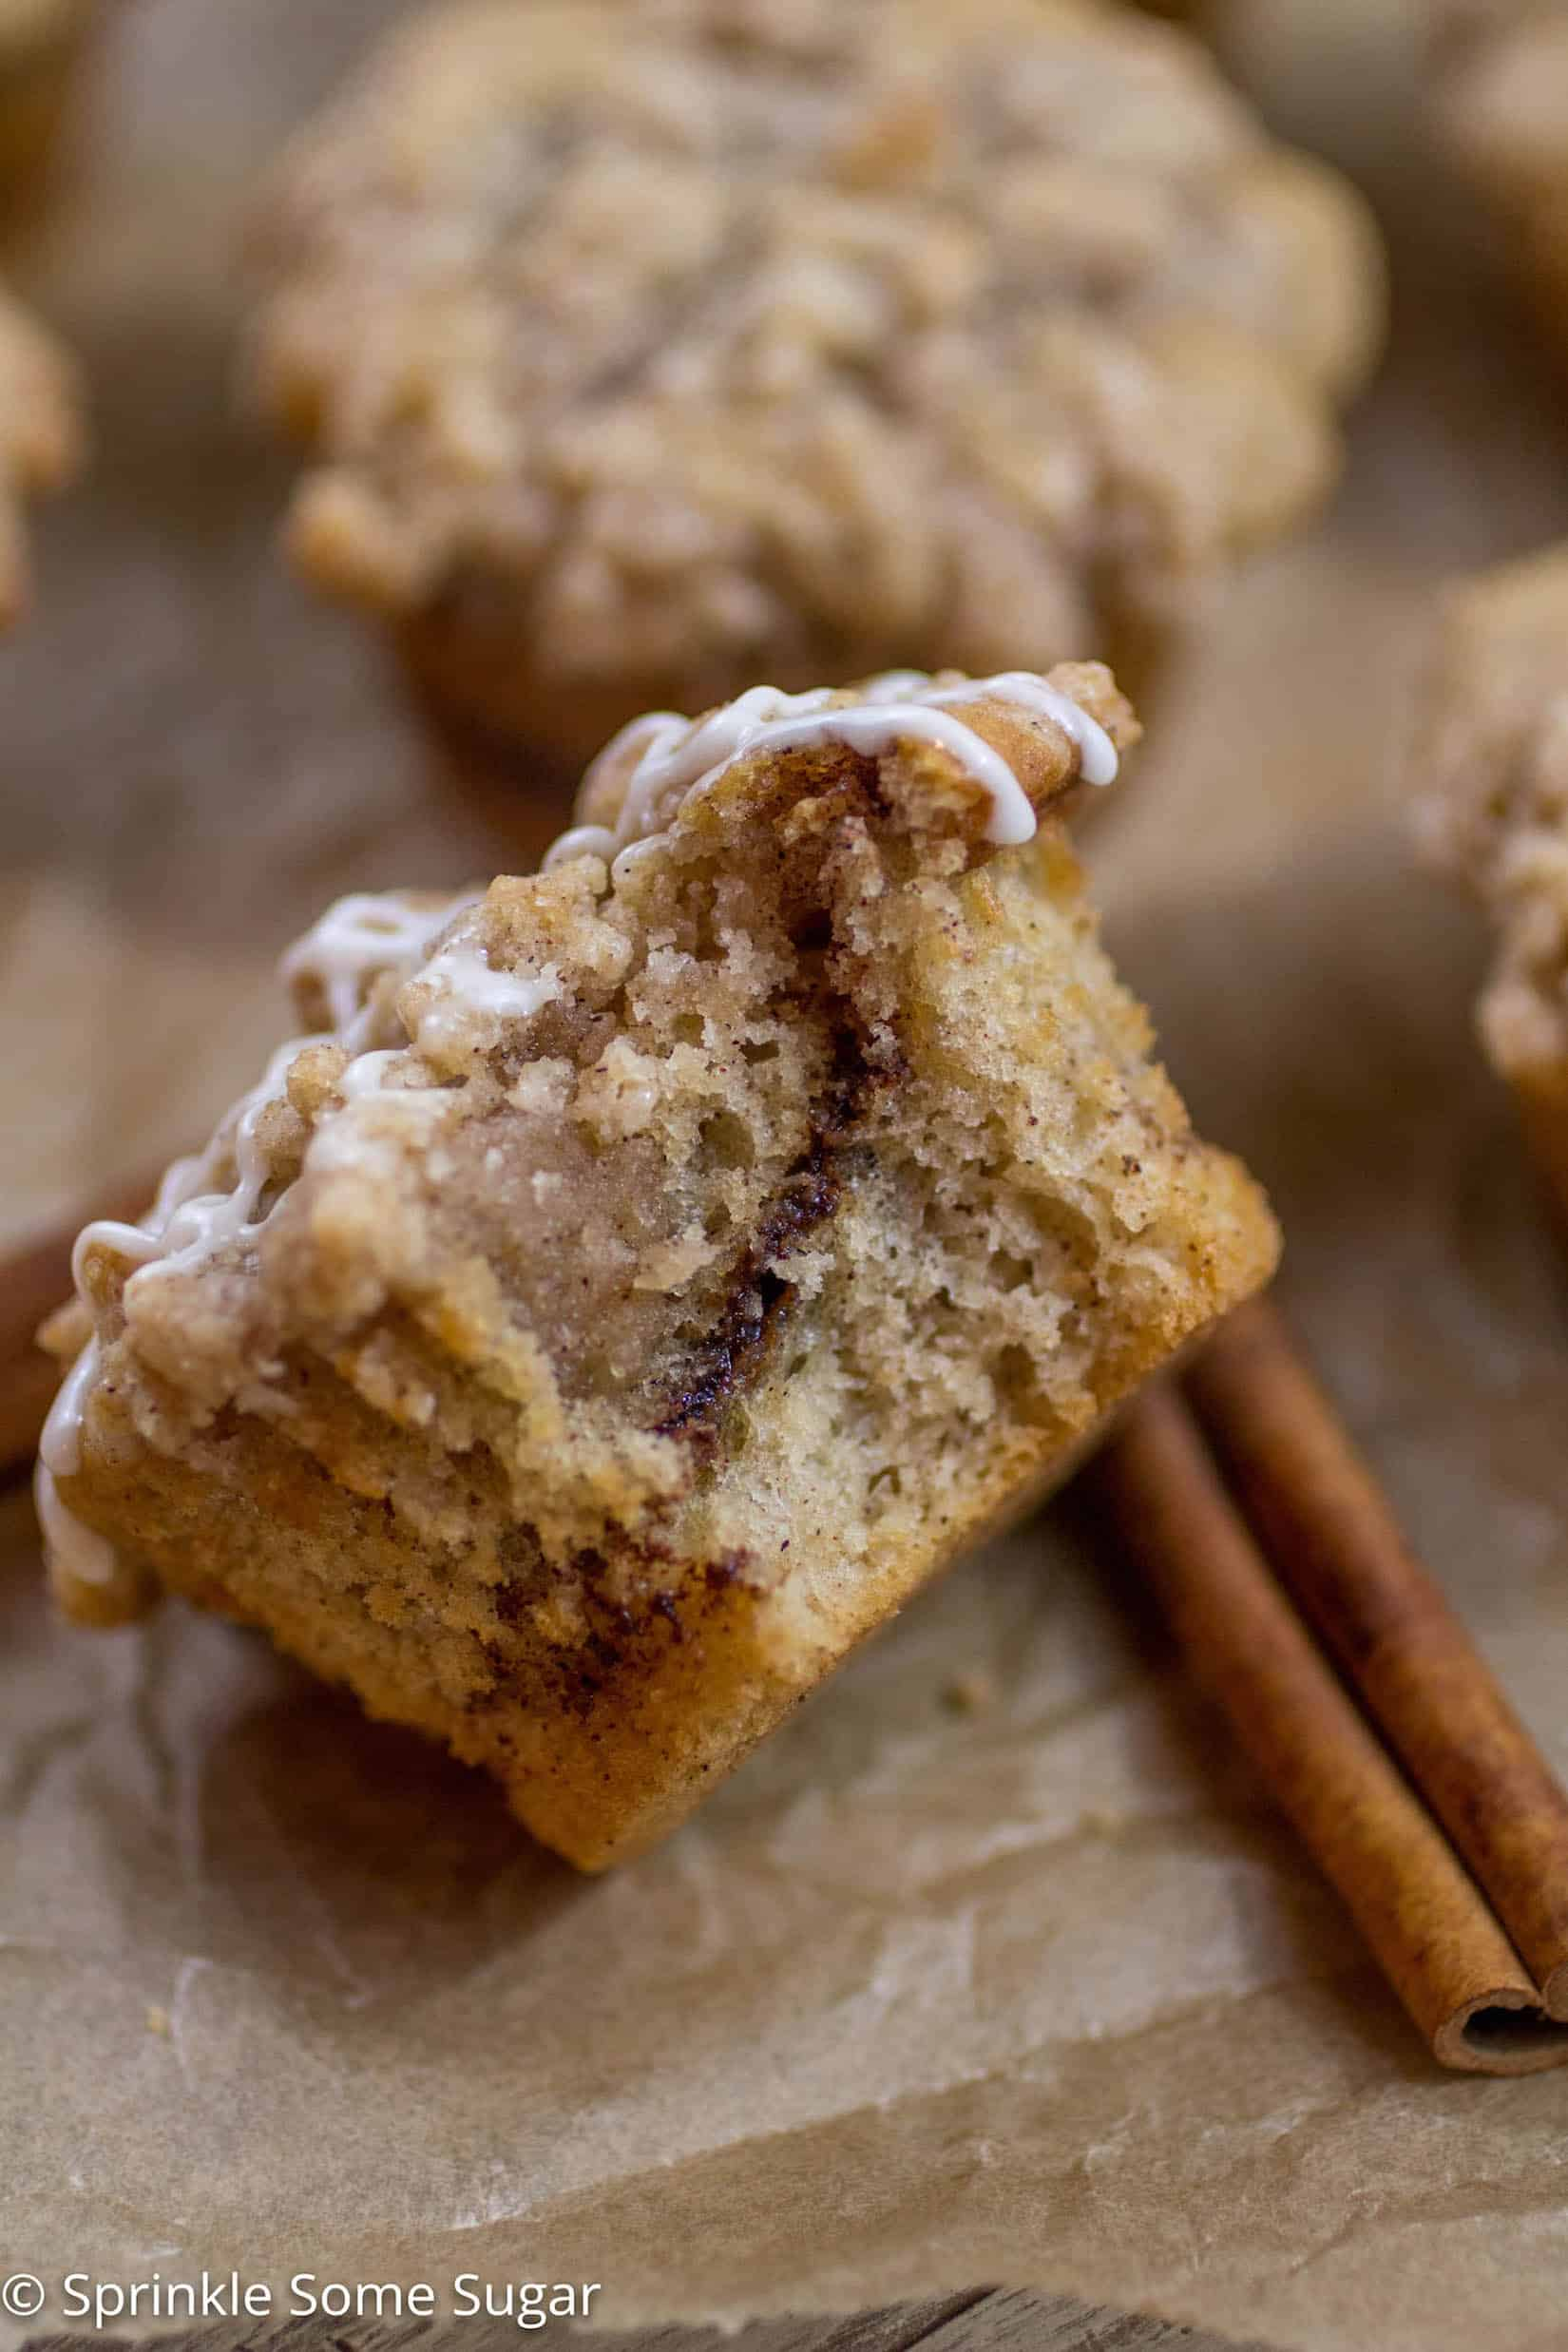 Cinnamon Swirl Coffee Cake Muffins - The most tender muffins with a gooey cinnamon center and topped with a sweet crumb topping!